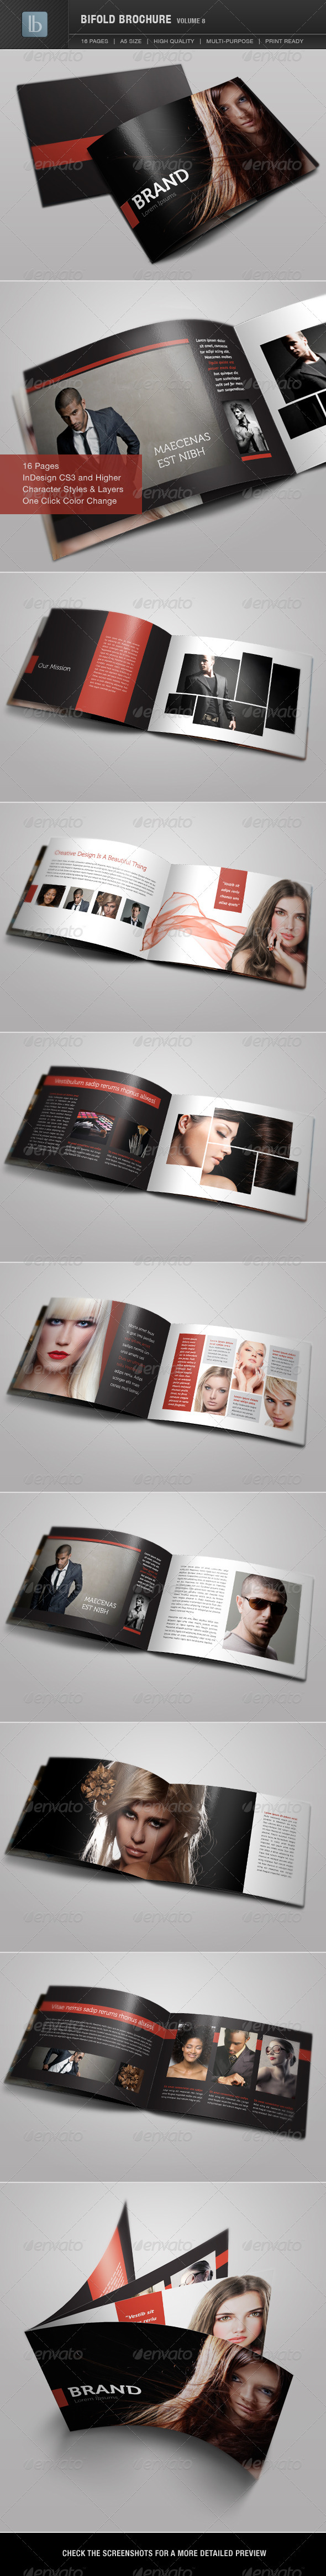 Bifold Brochure | Volume 8 - Corporate Brochures